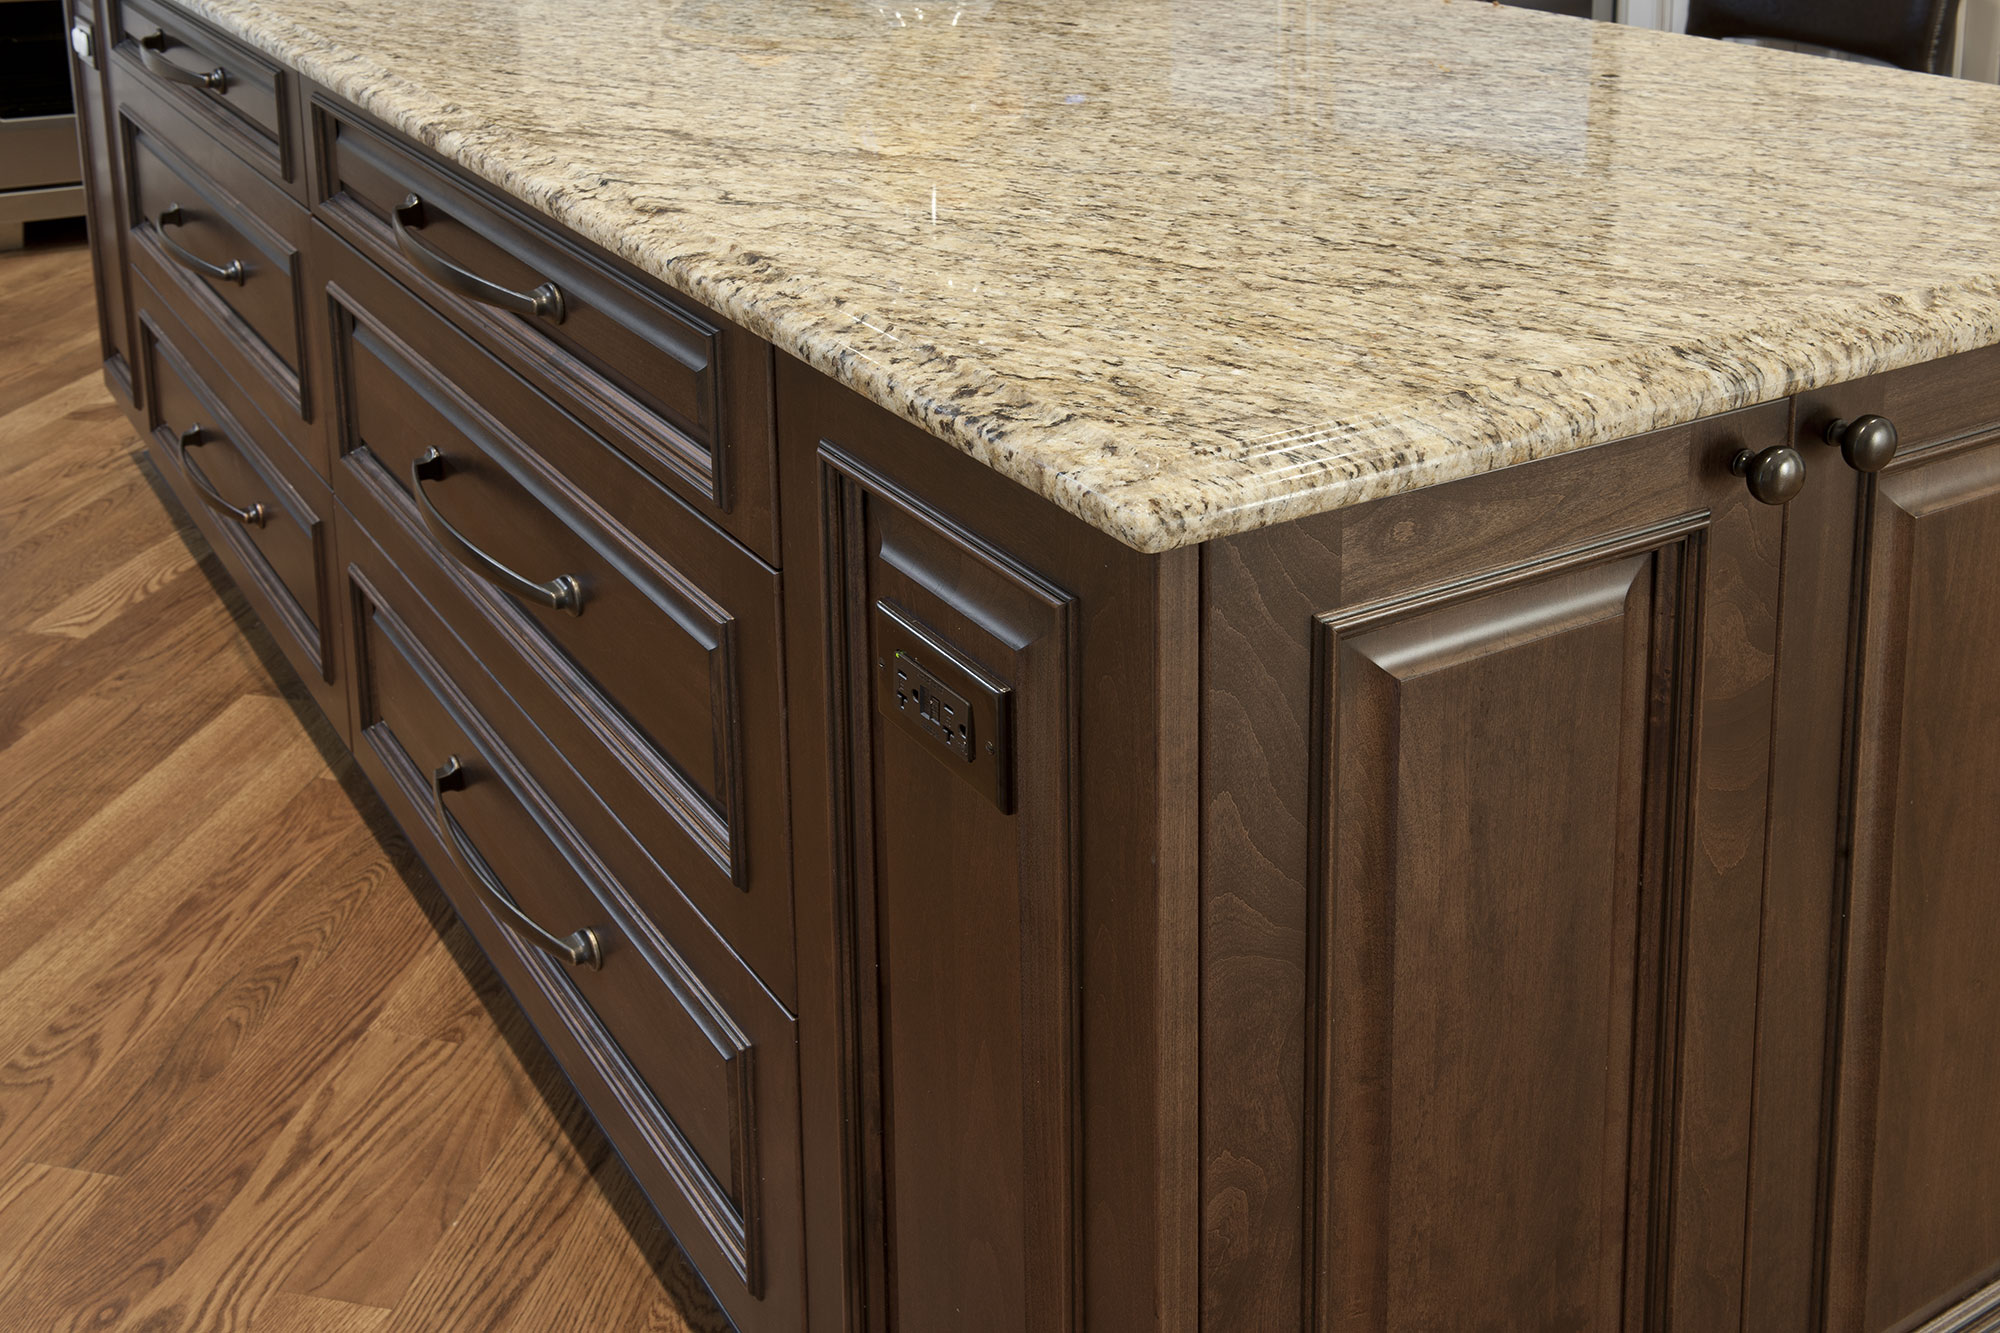 Kitchen cabinets south surrey bc for Kitchen cabinets surrey